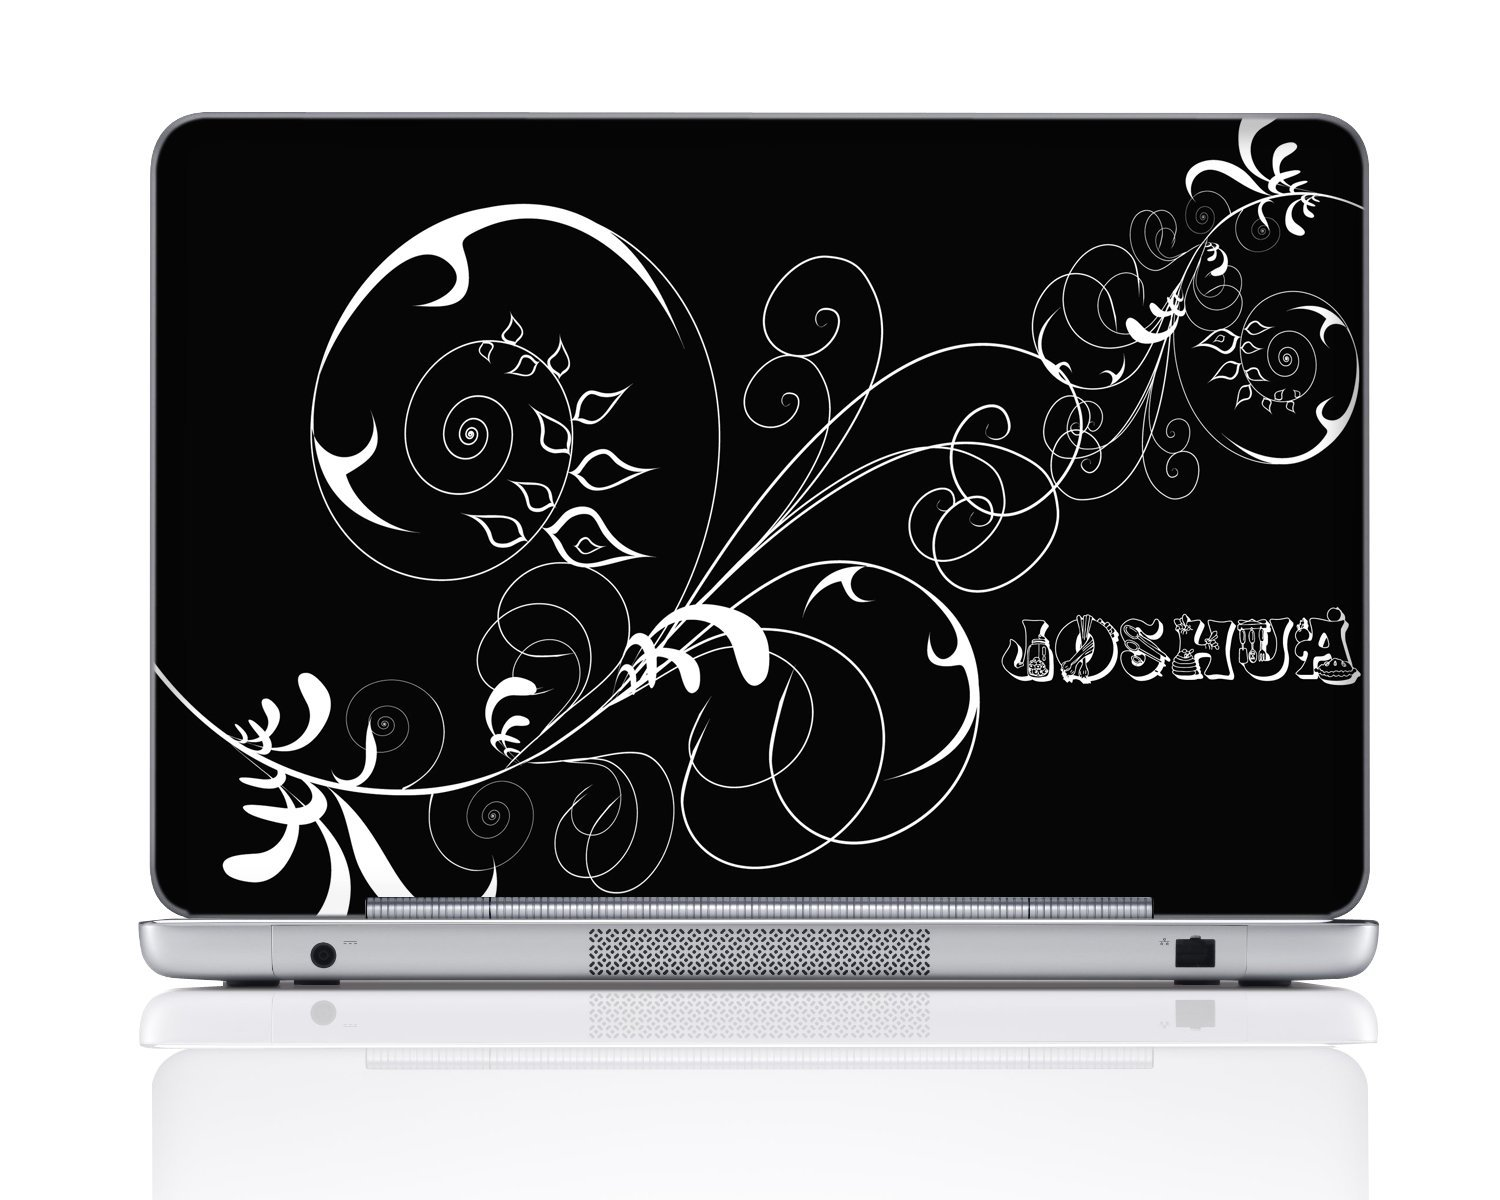 Meffort Inc® Personalized Laptop Notebook Skin Sticker Cover Art Decal, Customize Your Sticker Size & Name (Max Size: 16 X 11 Inch)